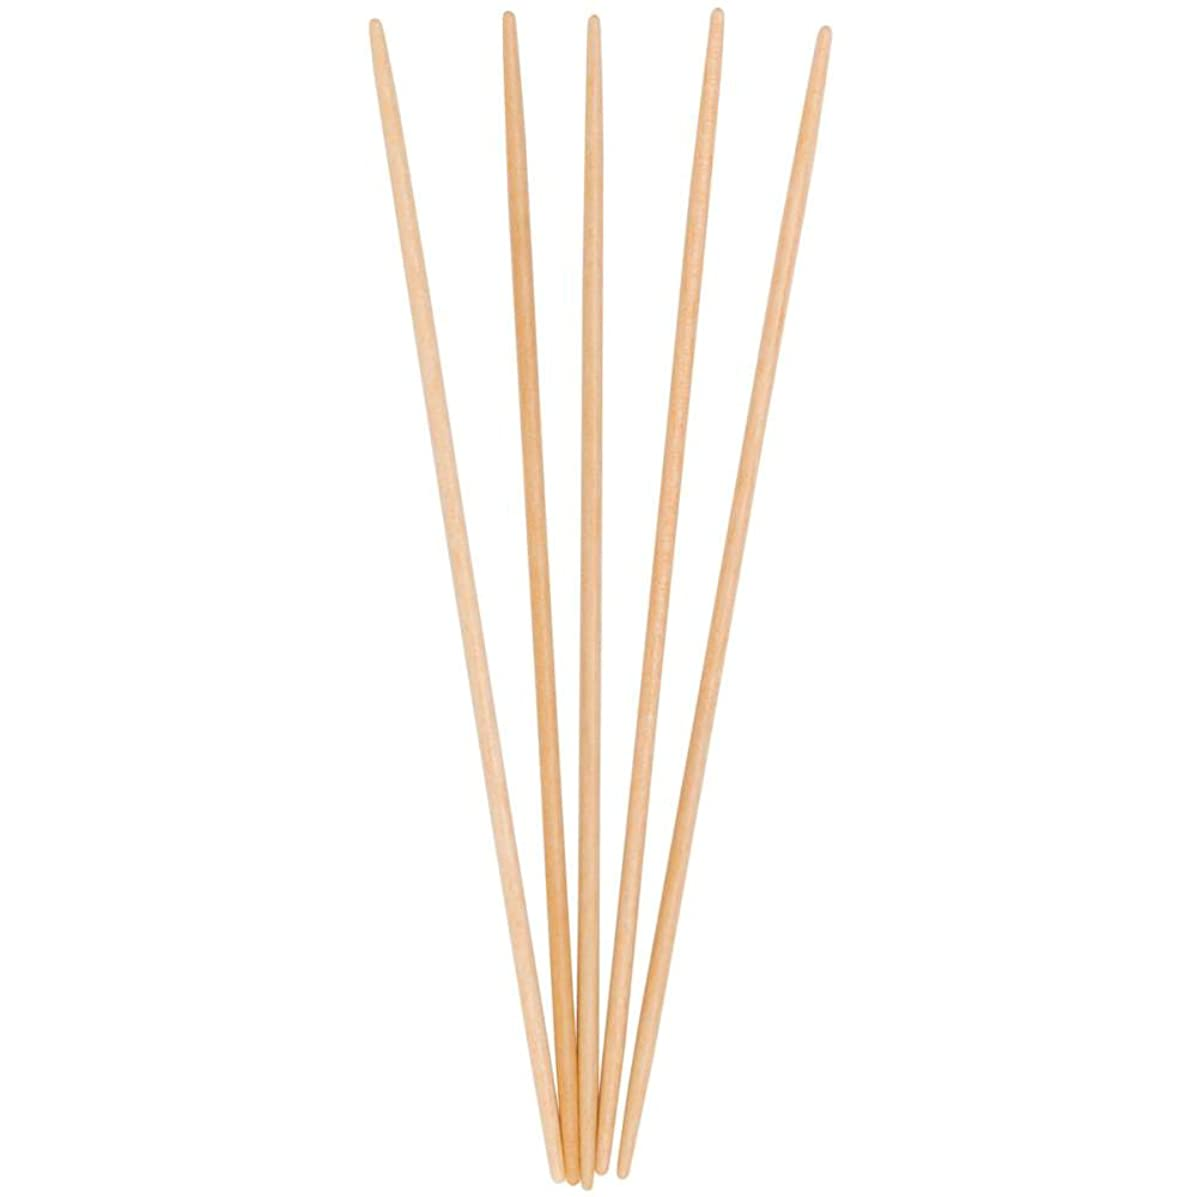 Brittany Double Point 5 inch (13cm) Knitting Needles (Set of 5) Size US 1 (2.25 mm) 4011